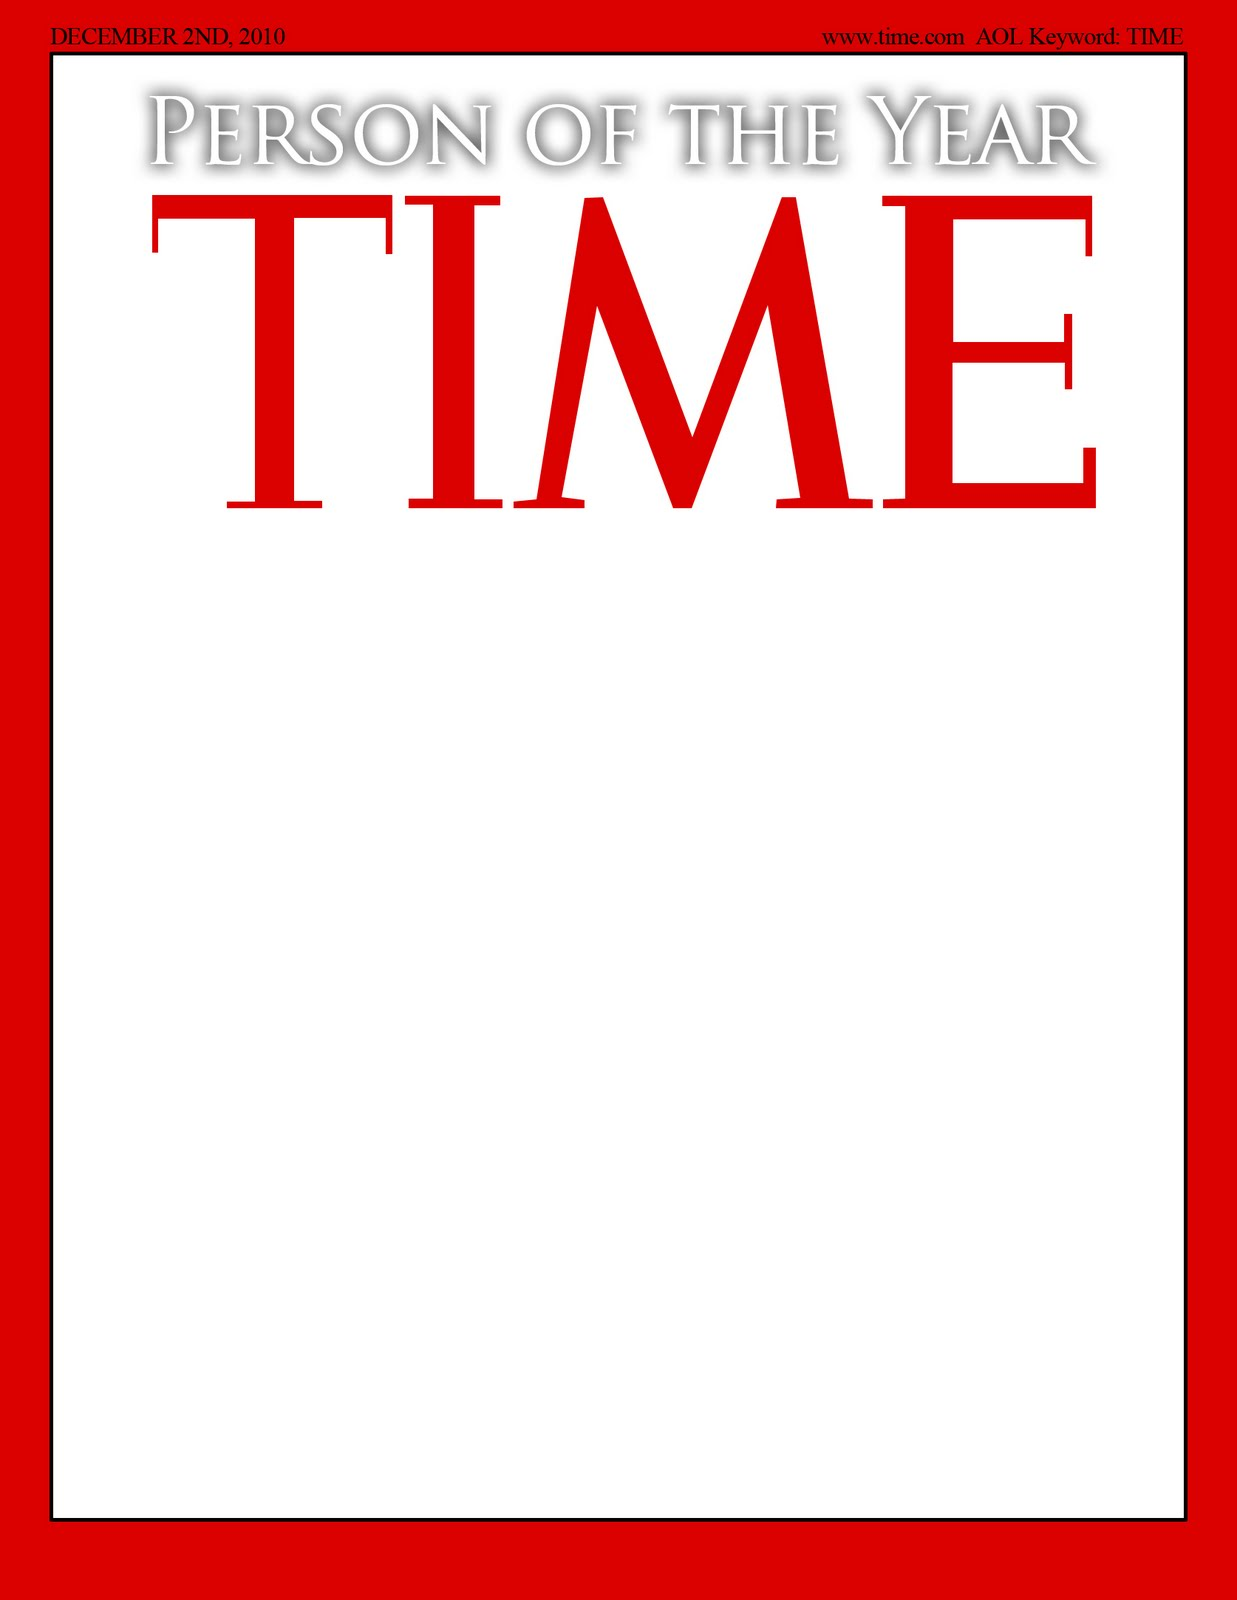 Photoshop Skillz: Sub Day TIME Magazine Project